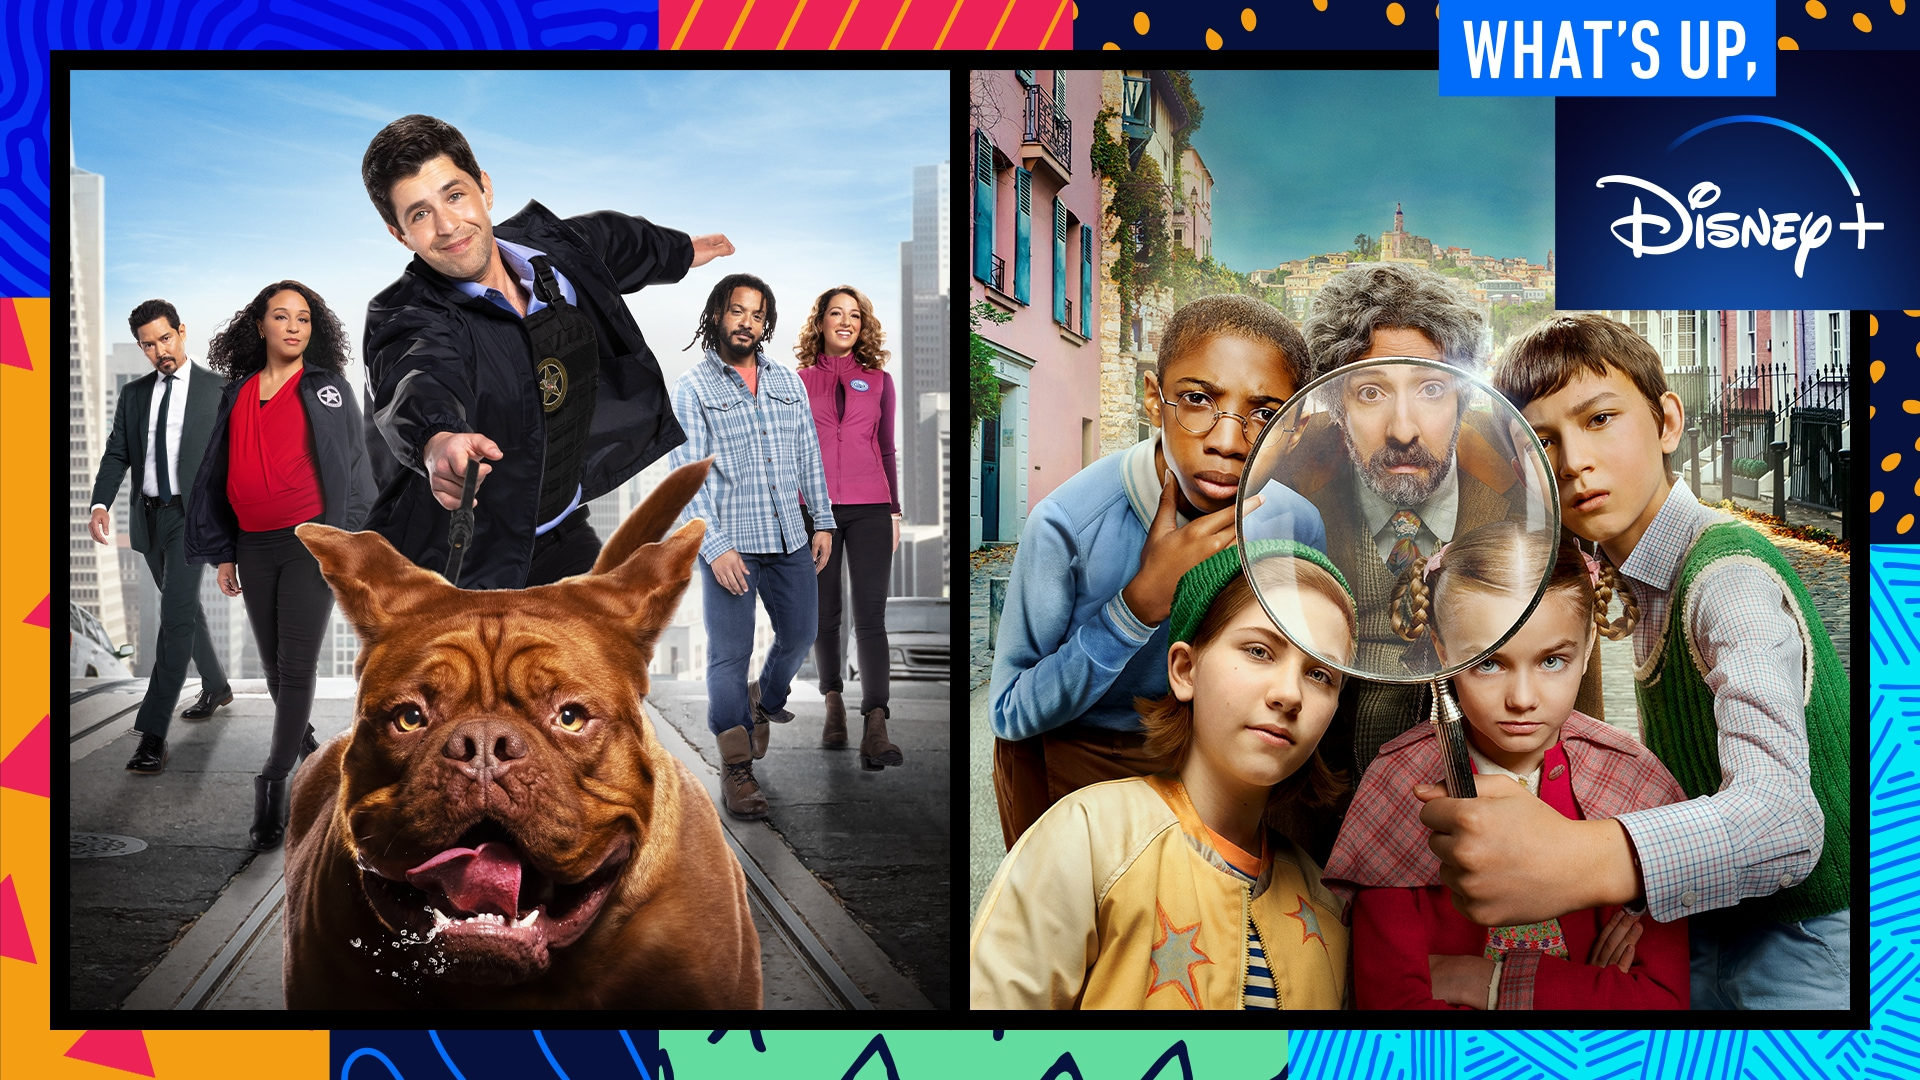 Games With the Cast of Turner & Hooch and the Music of Monsters at Work | What's Up, Disney+